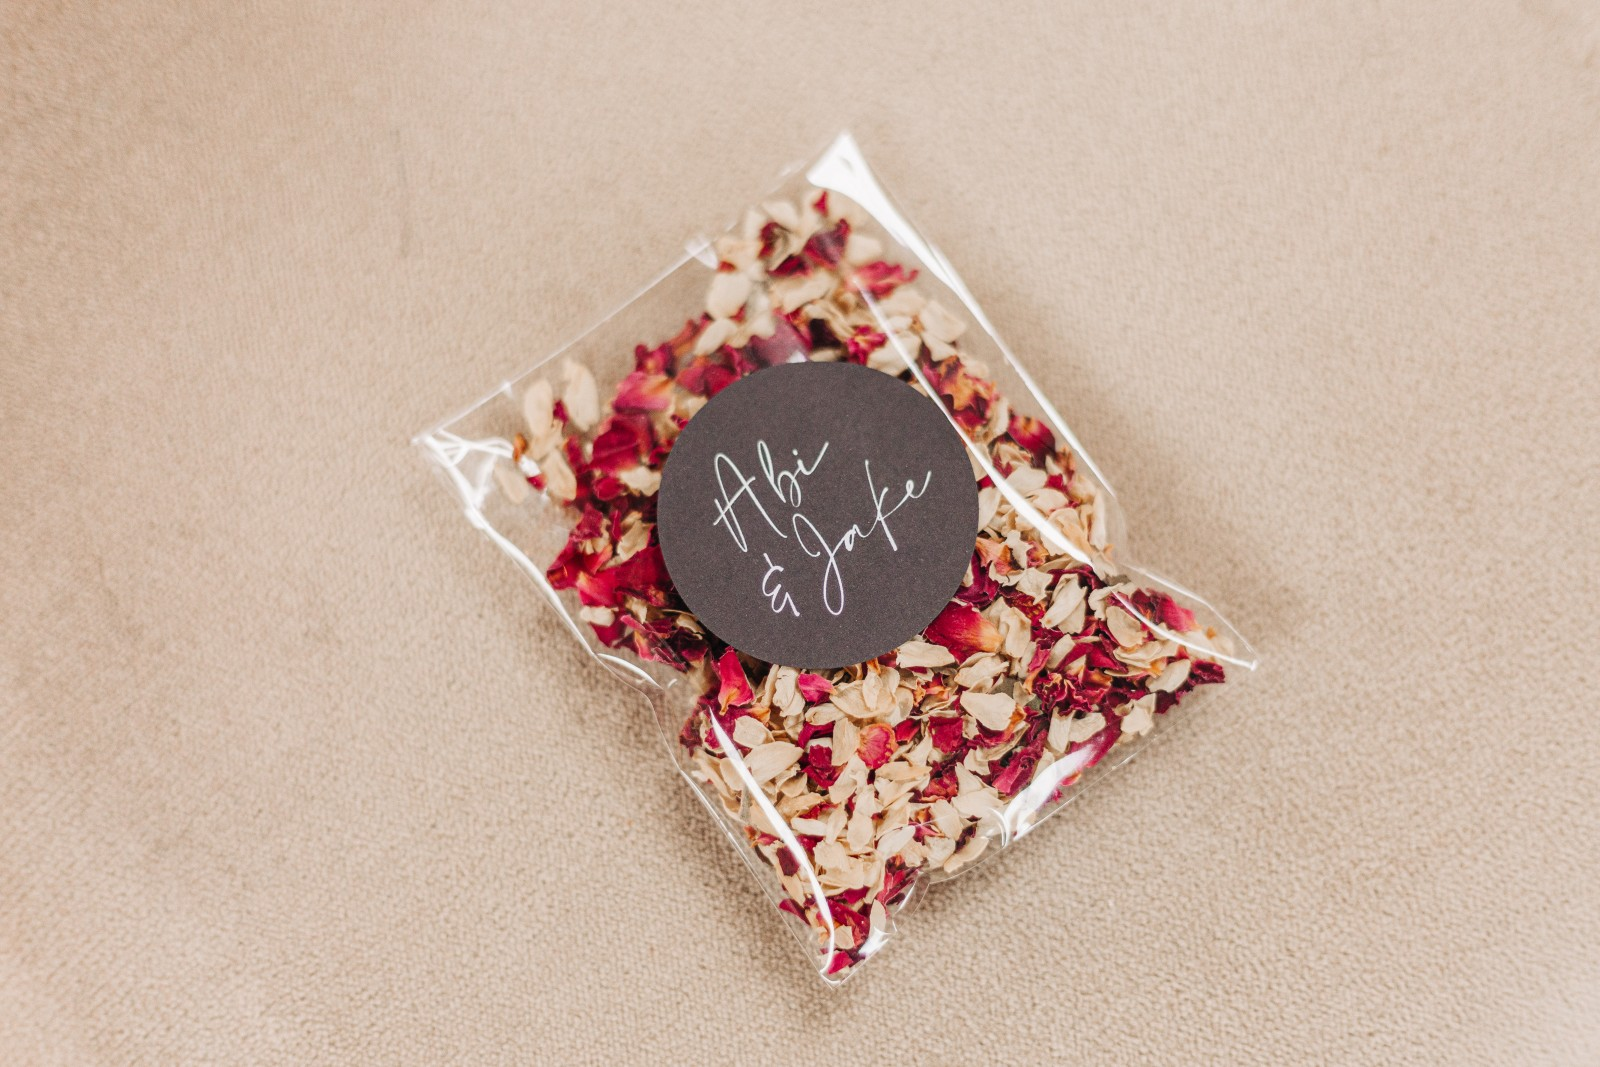 dried flower wedding confetti with personalised label